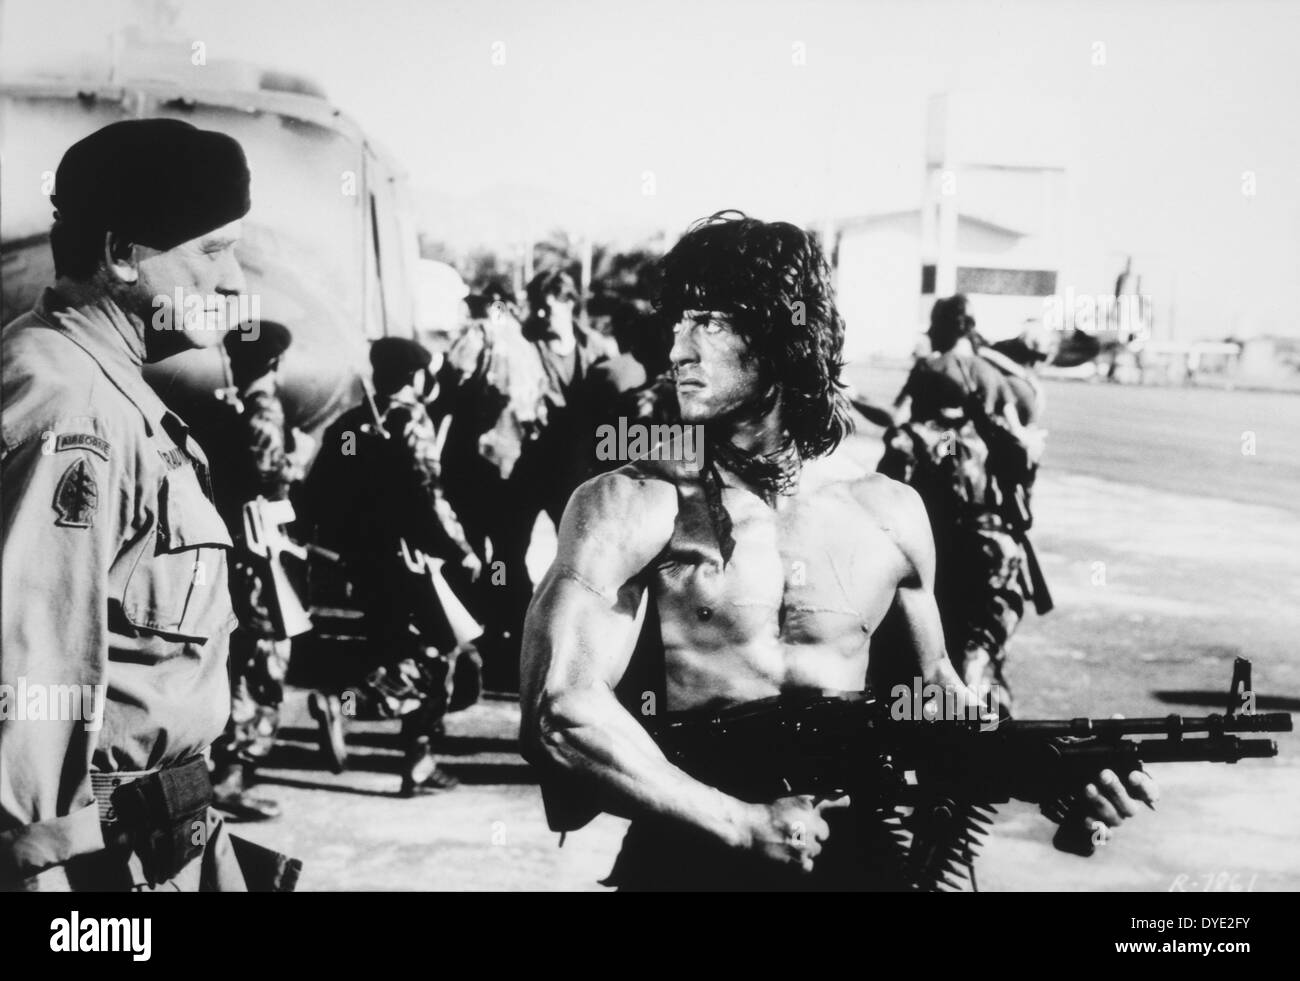 Richard Crenna and Sylvester Stallone, on-set of the Film, 'Rambo: First Blood Part II', 1985 - Stock Image